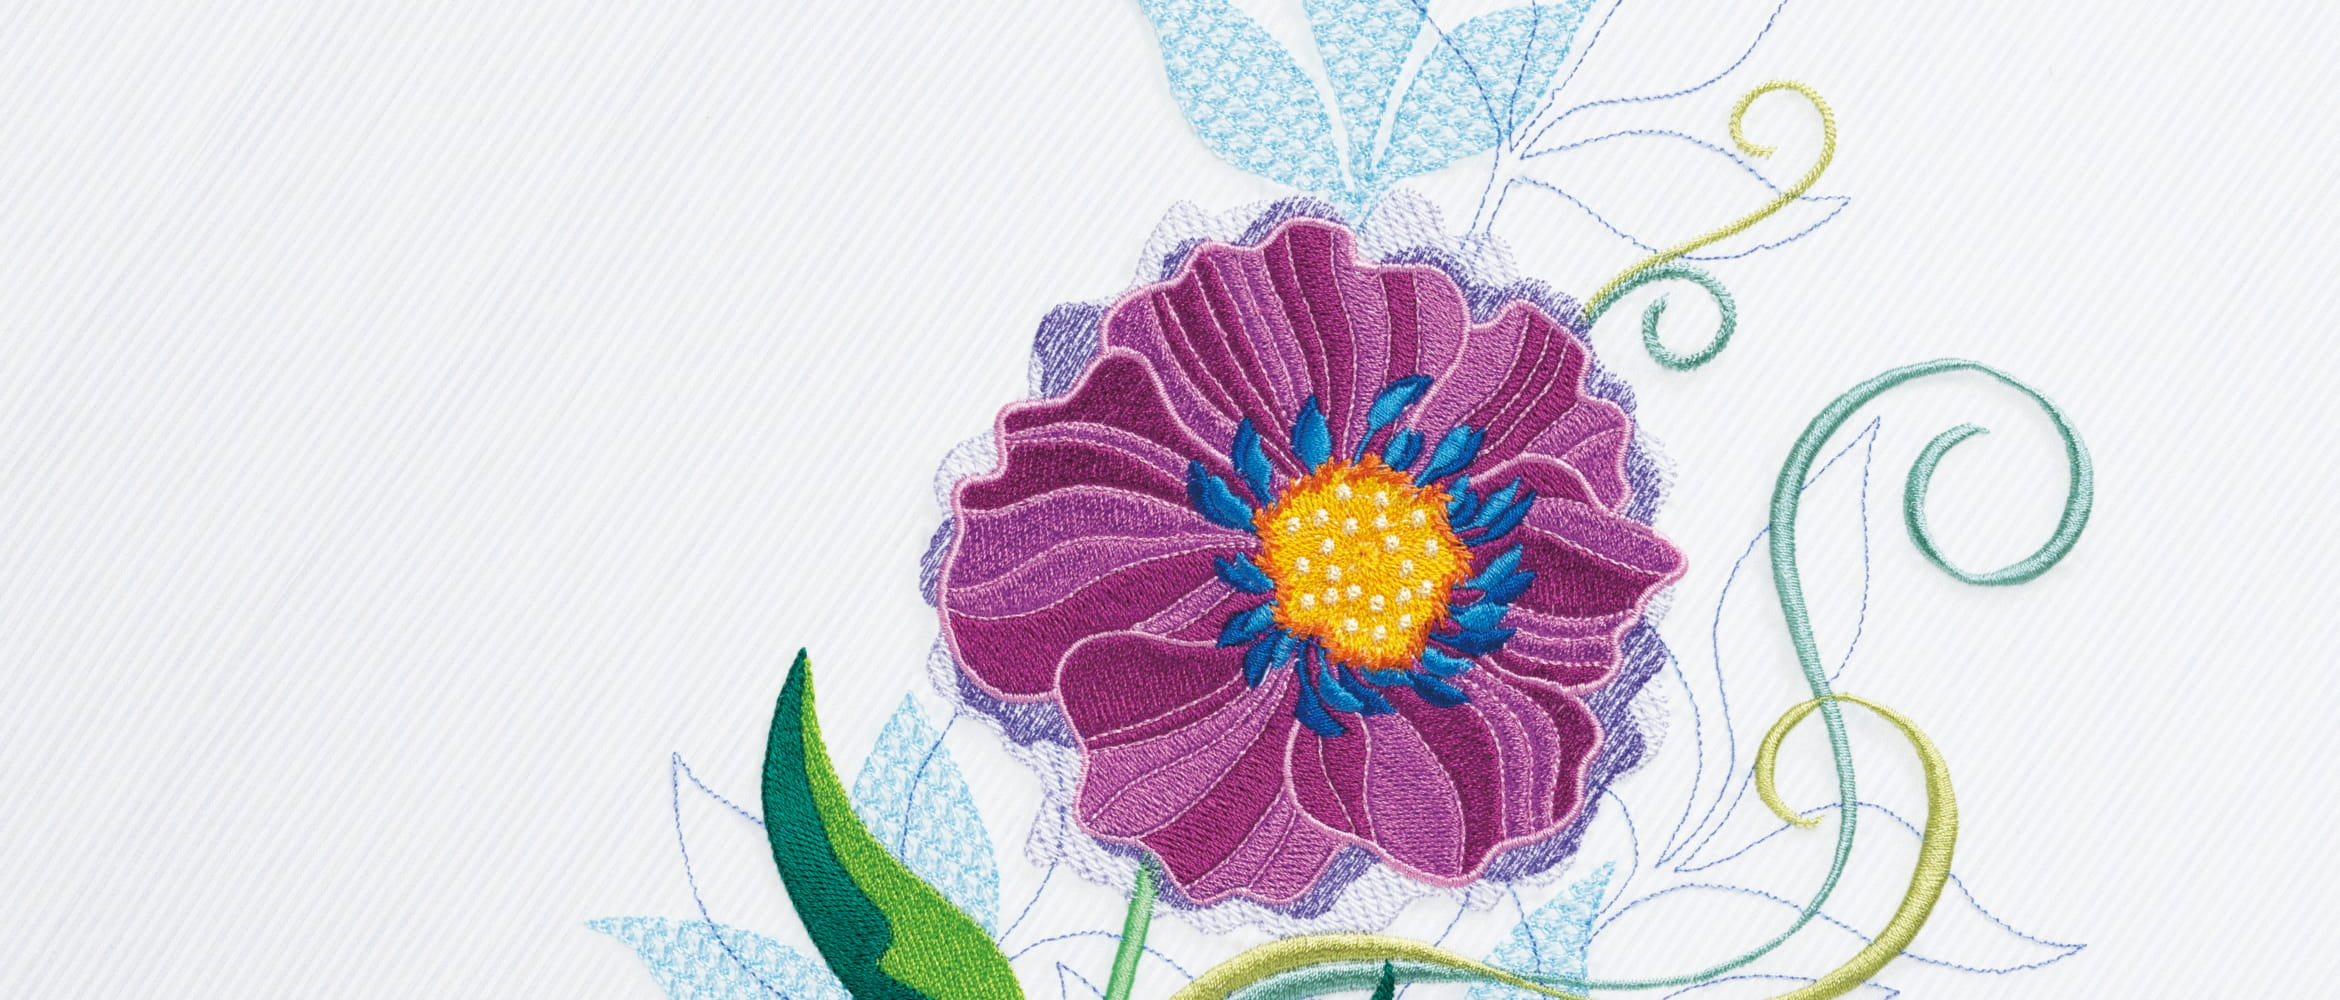 Floral embroidery on grey background